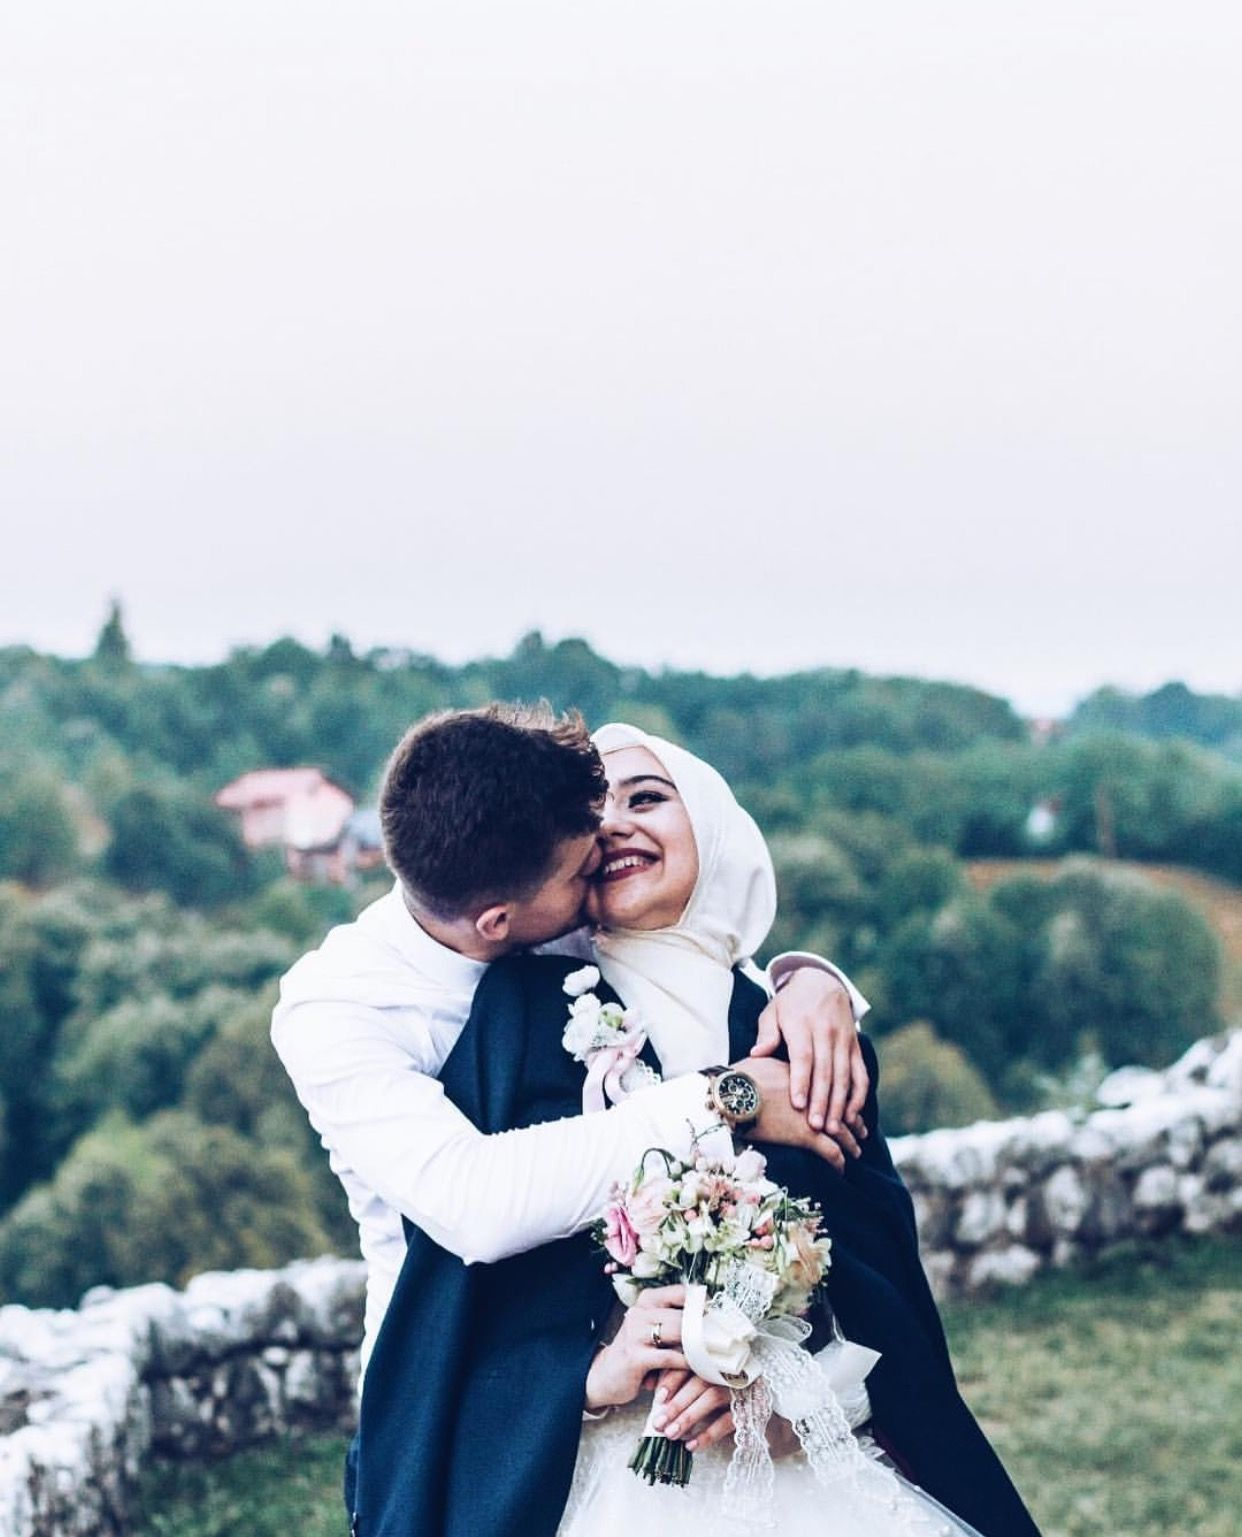 Pin by 🌸just4girls🌸 on Muslimcouples   Pinterest   Muslim couples ...